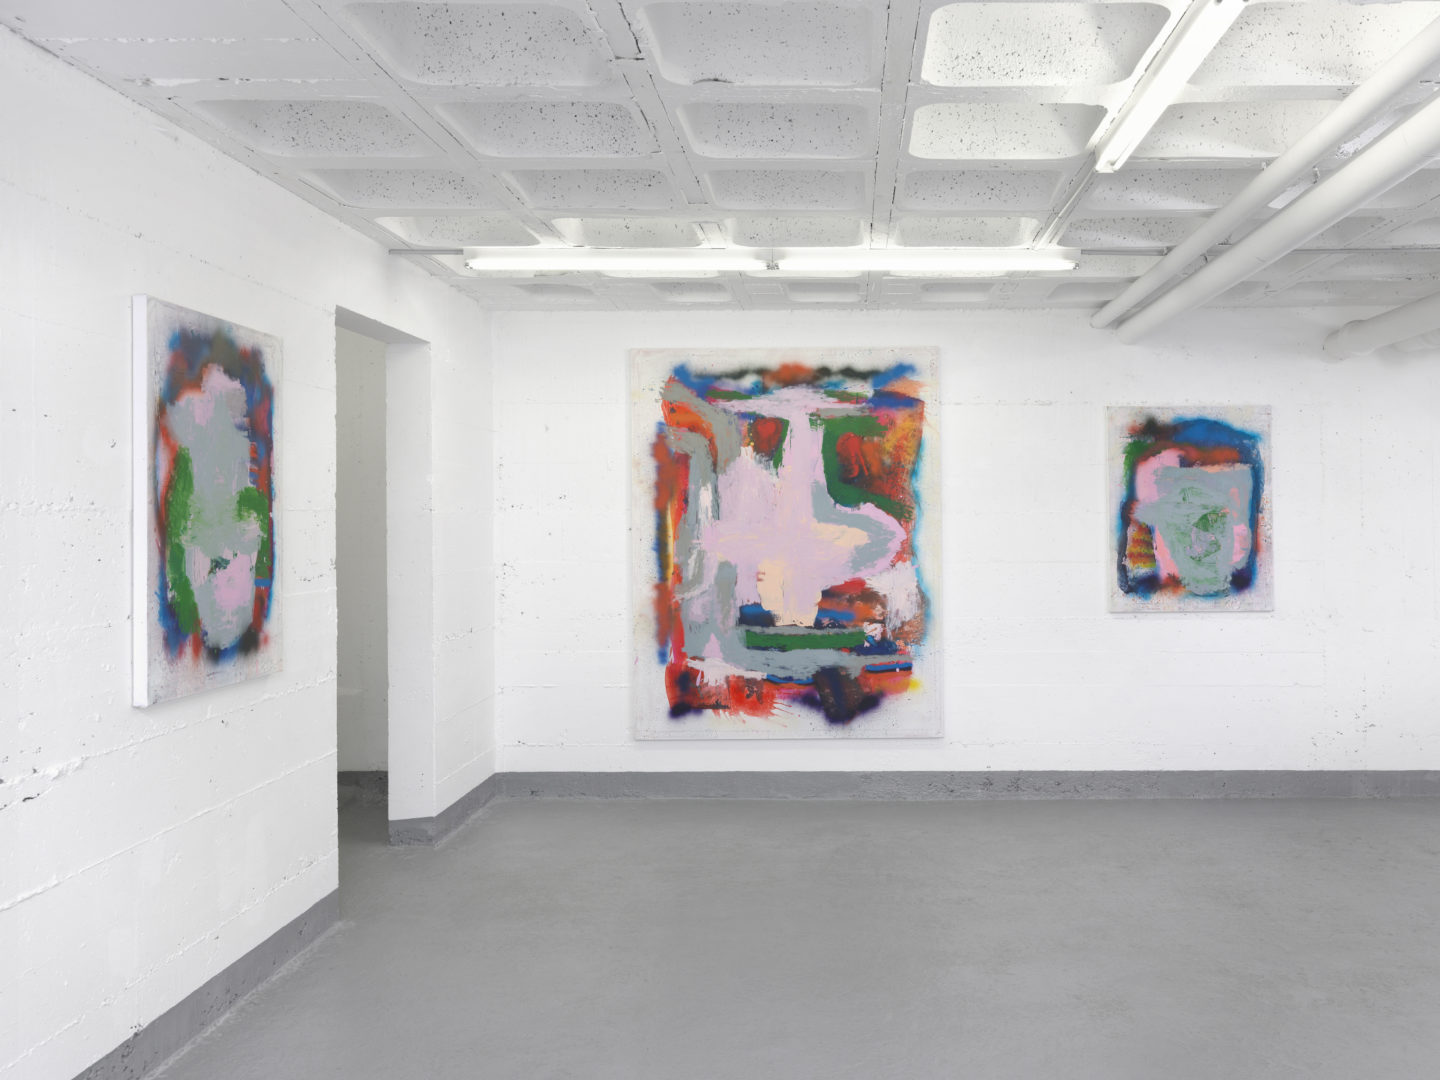 Exhibition View Marco Pariani «Vegan Racism» at Ribordy Contemporary, 2018 / Photo: Annik Wetter / Courtesy: the artist and Ribordy Contemporary